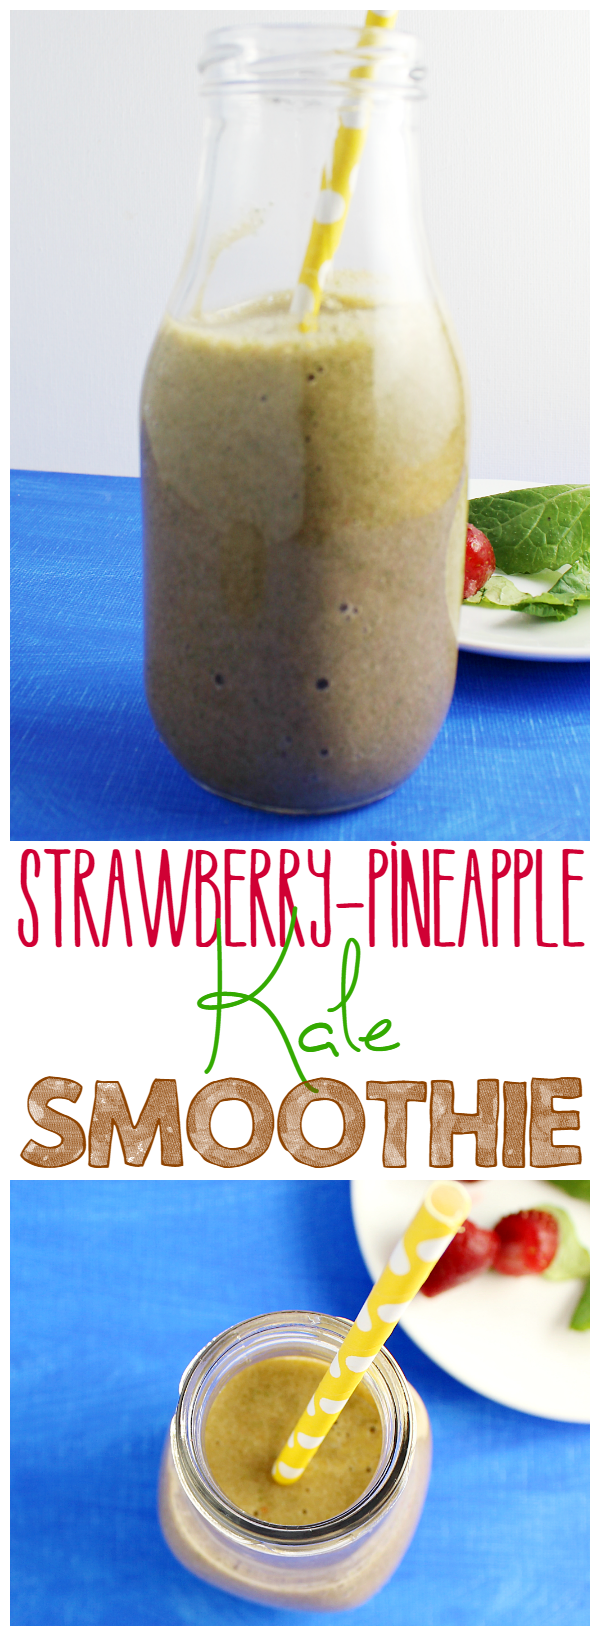 Make this yummy Strawberry-Pineapple Kale Smoothie! It's kid-approved!